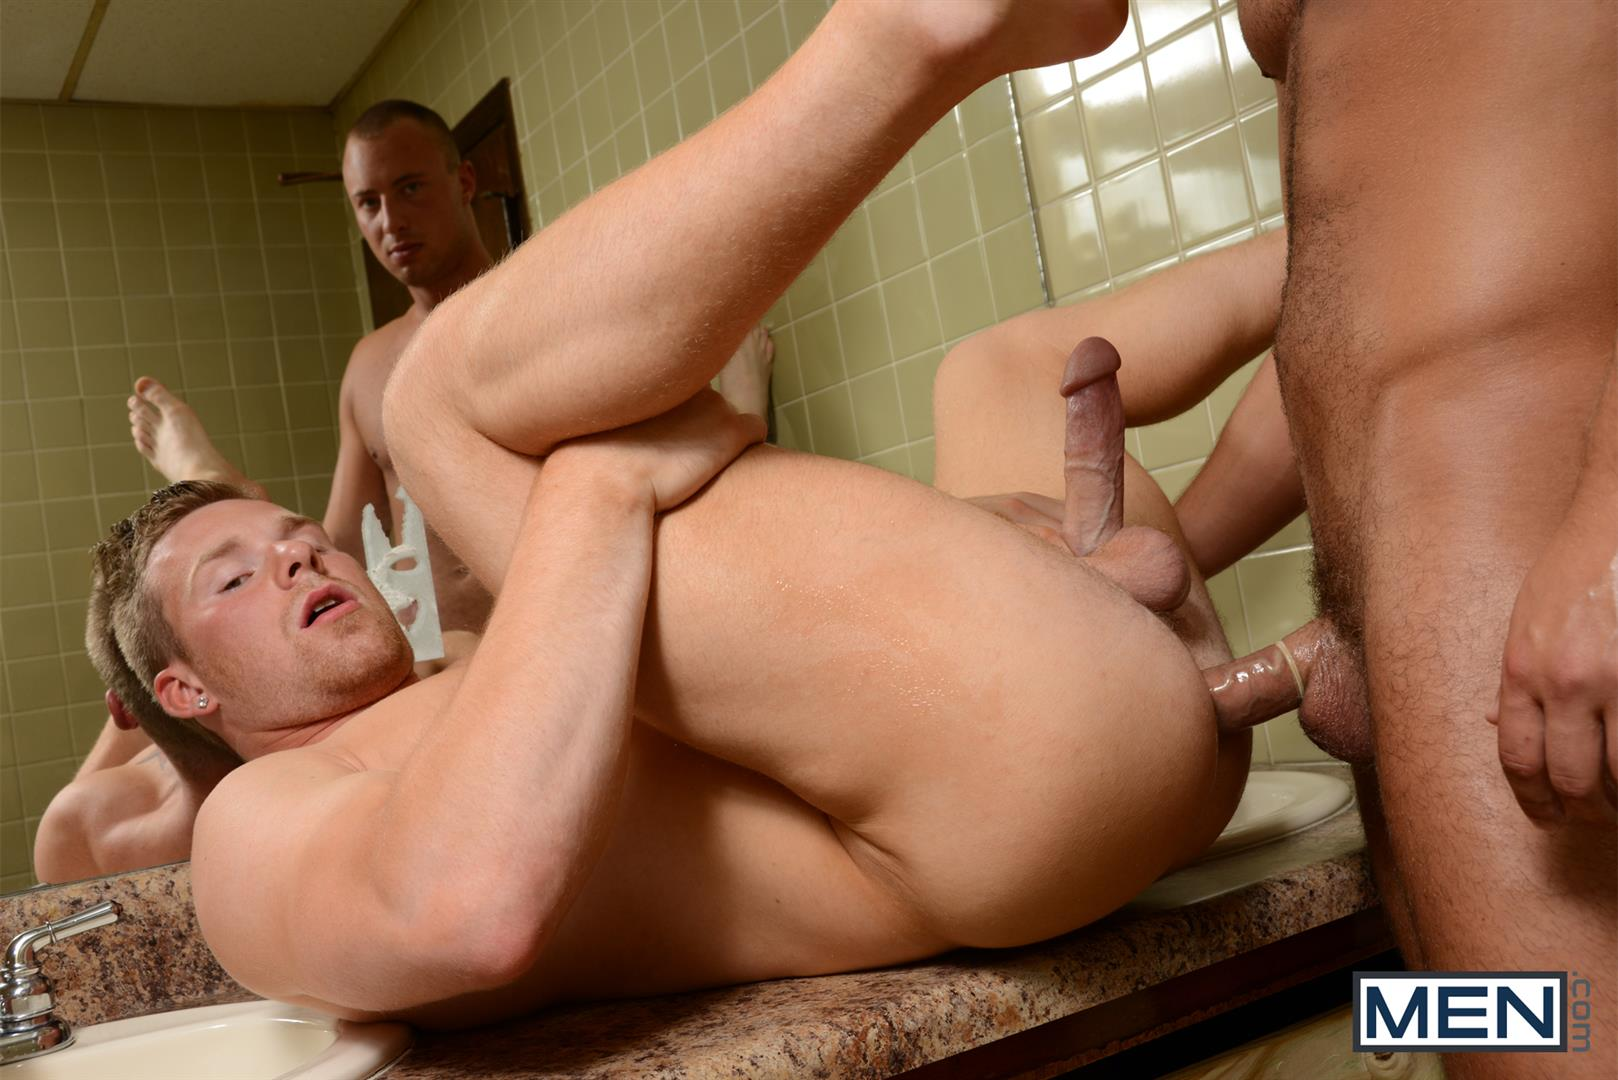 Straight guy gets fucked in the ass